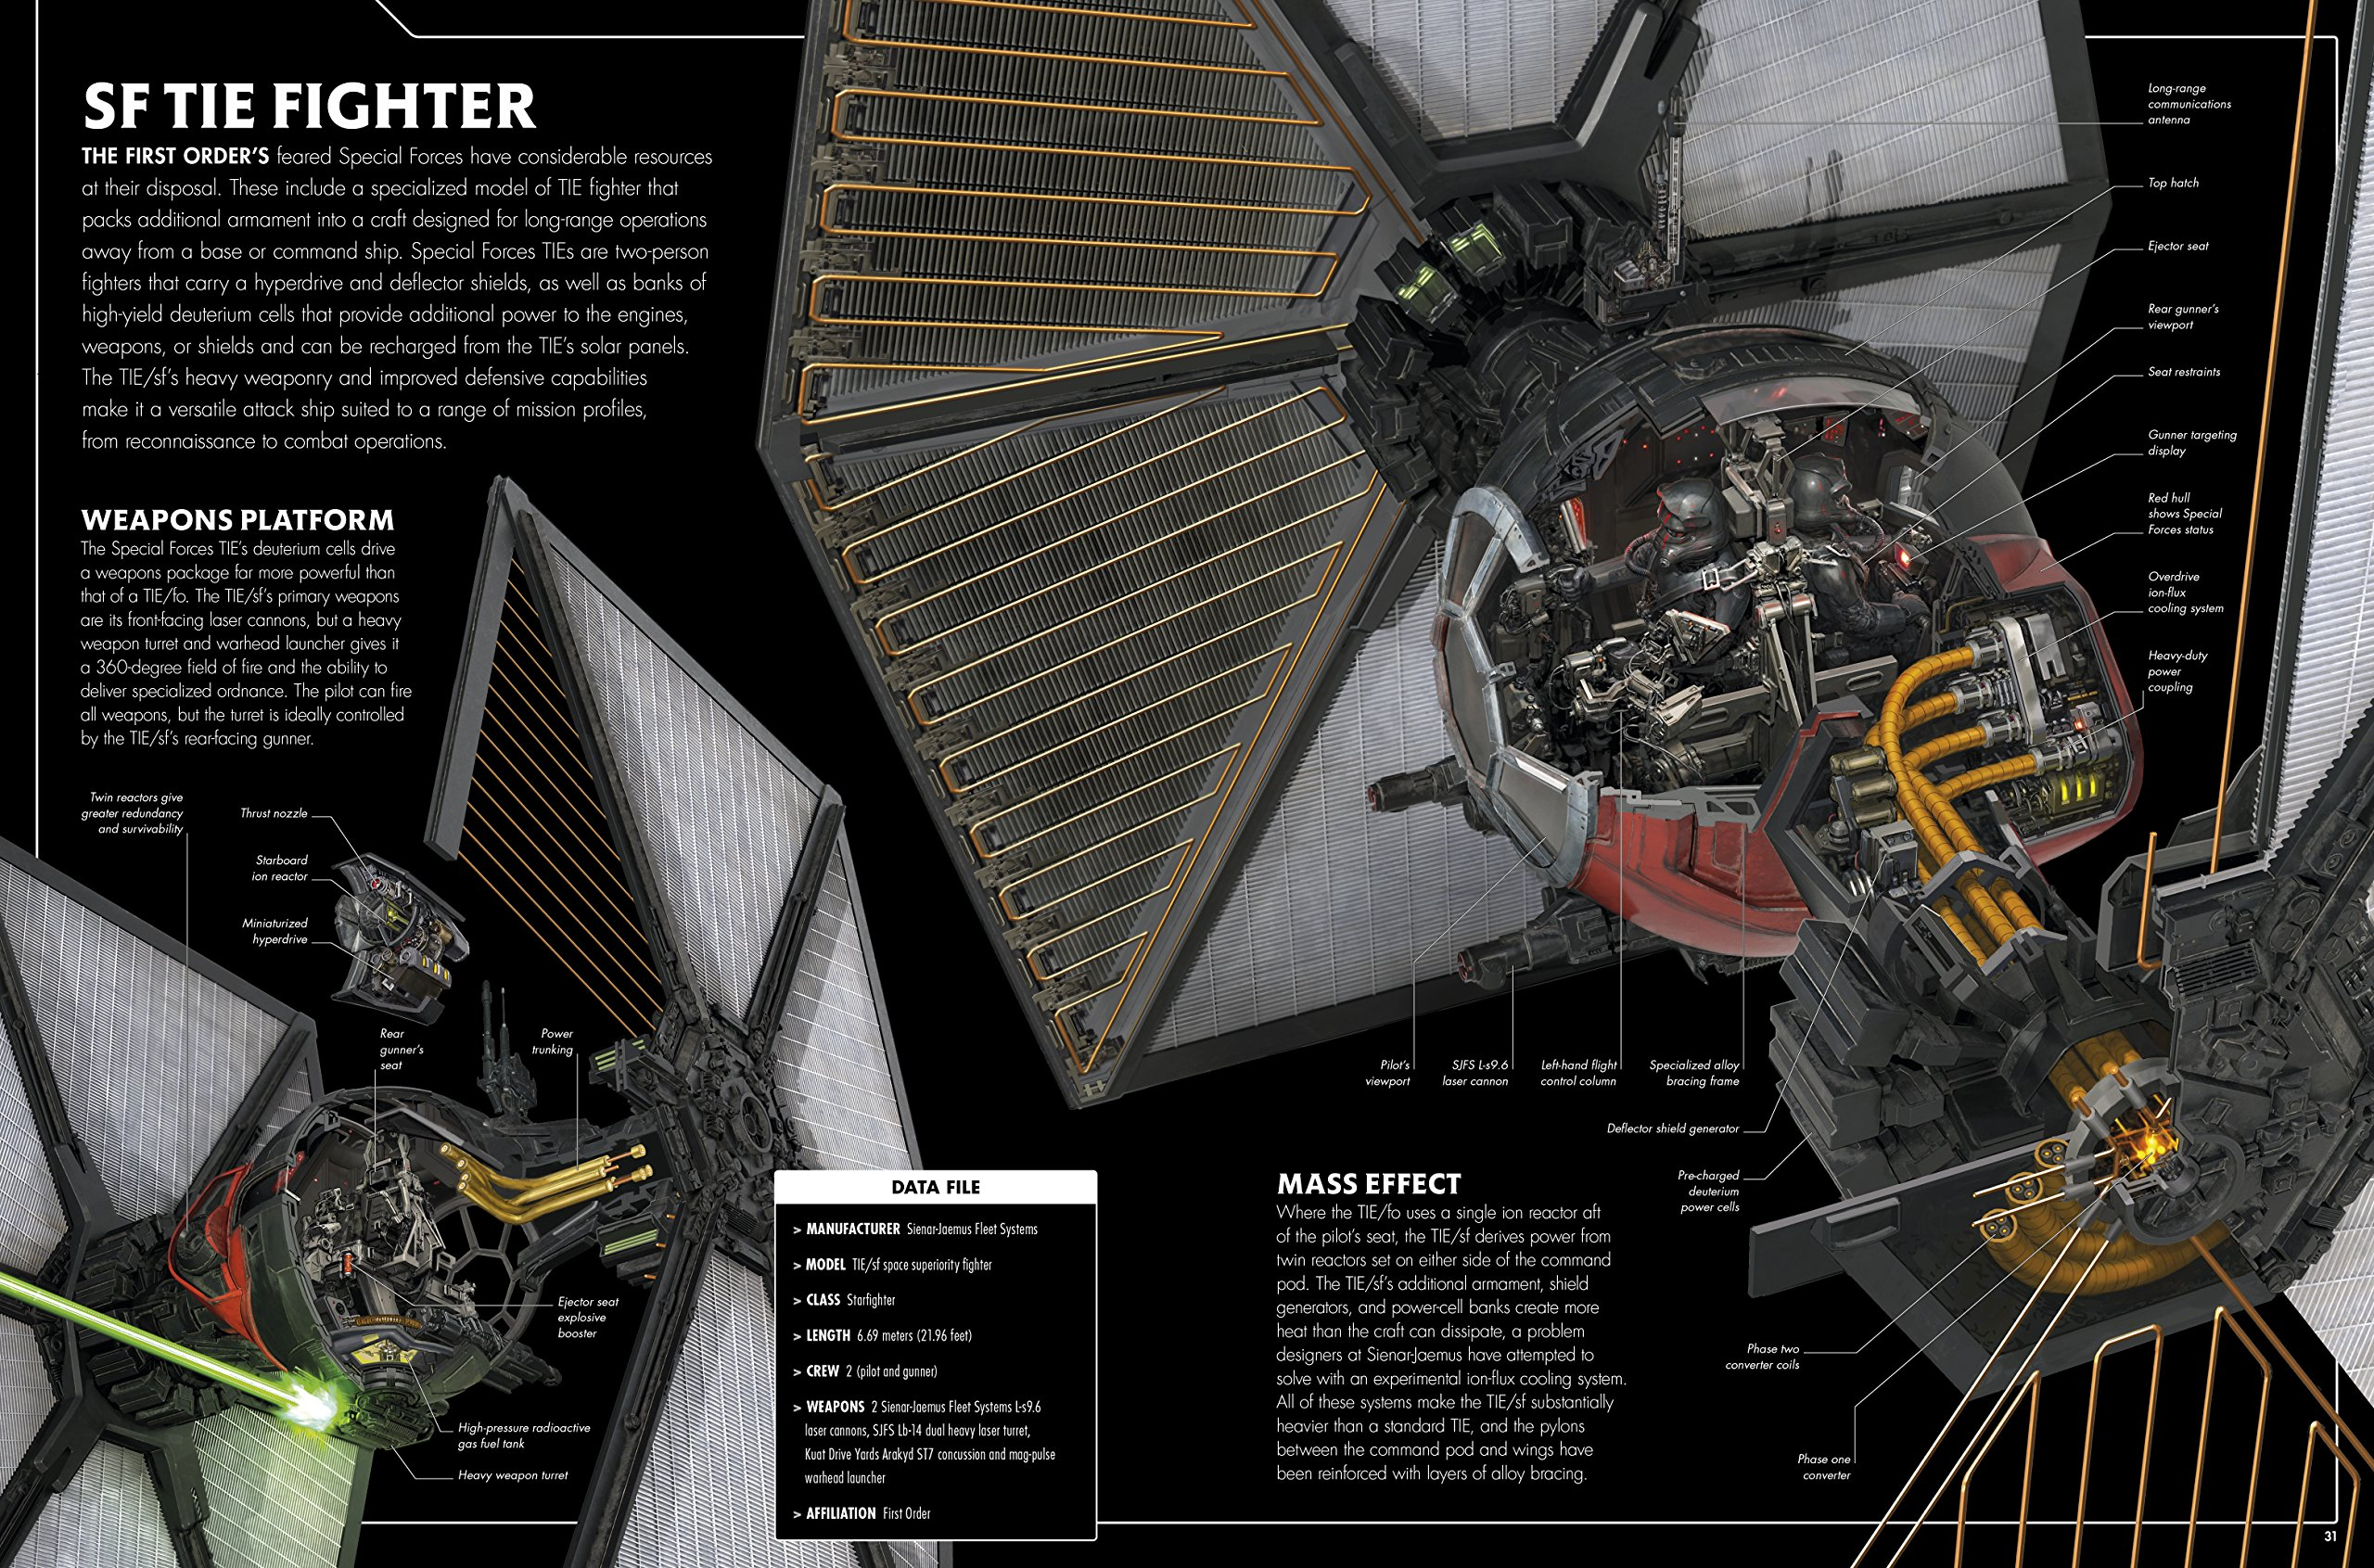 Star wars why did the tie fighter in the force awakens have life